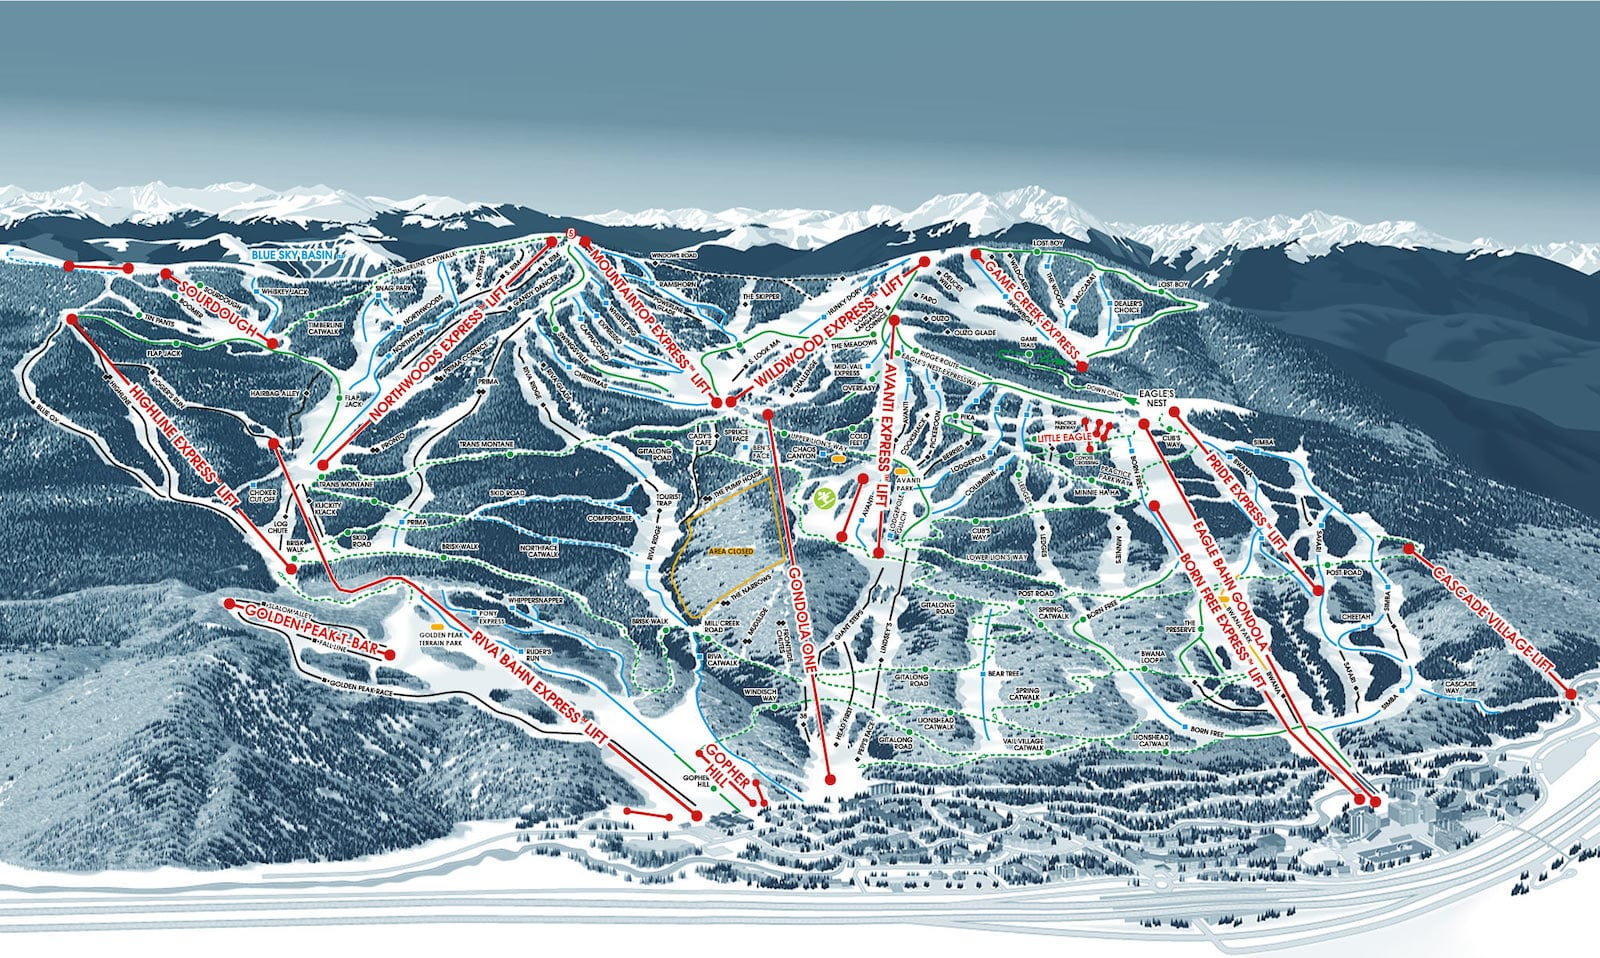 Vail Ski Resort Trail Map Front Side